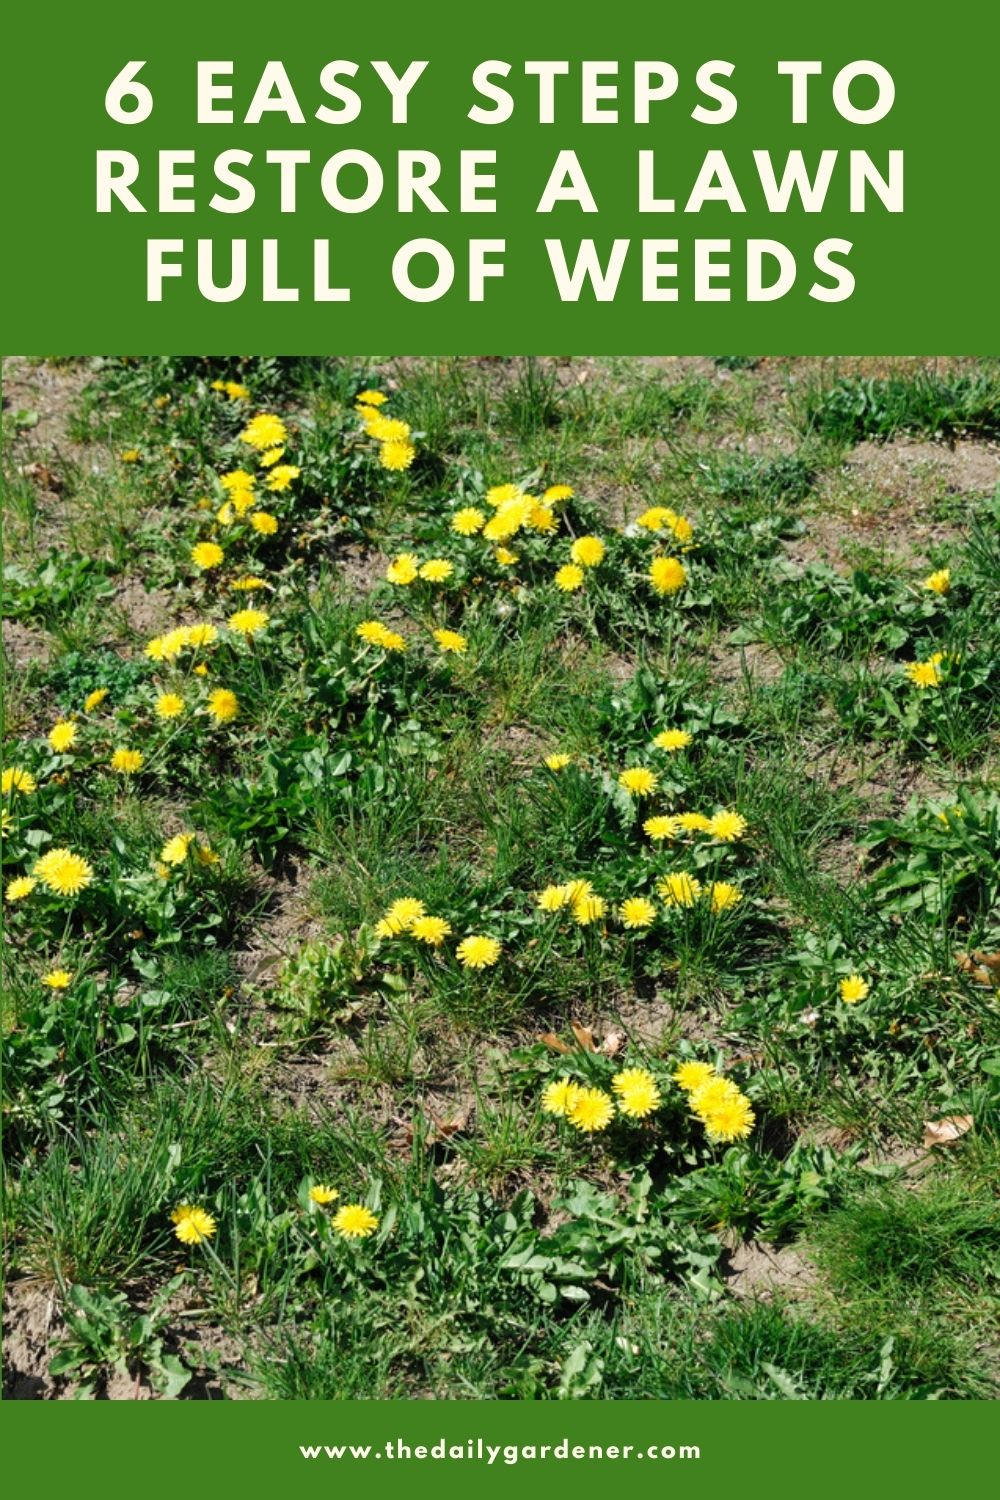 6 Easy Steps to Restore a Lawn Full of Weeds 1